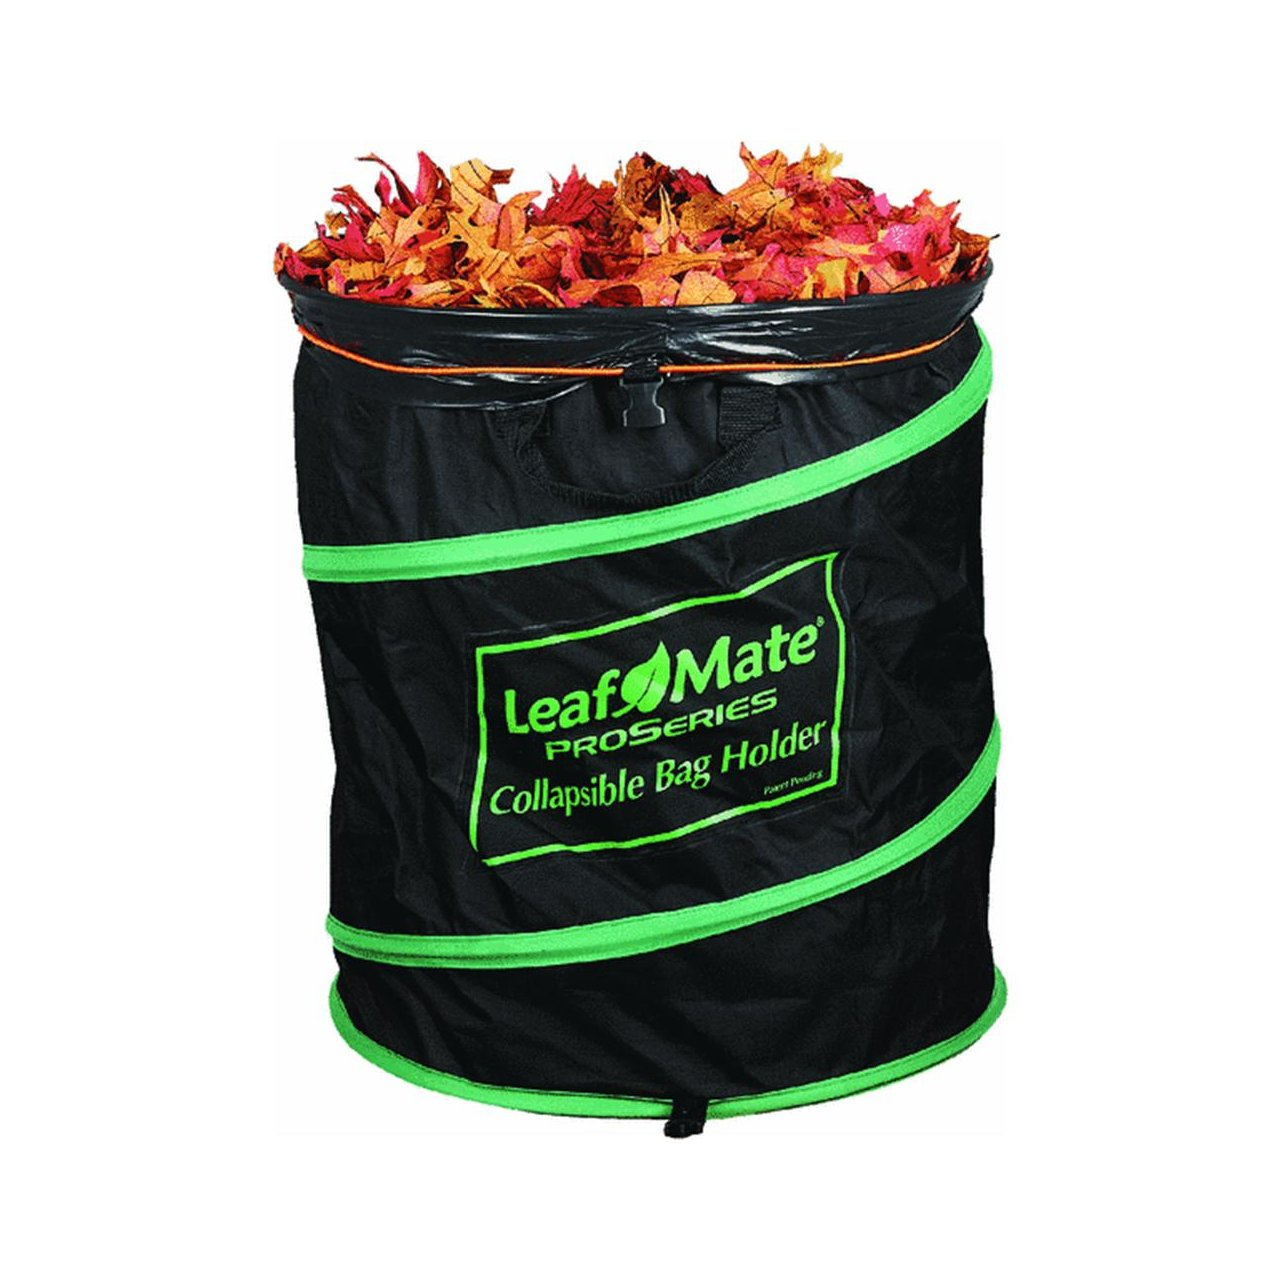 Get Quotations Leafmate Collapsible Yard Bag Holder Heavy Duty Reusable Leaf And Lawn Waste